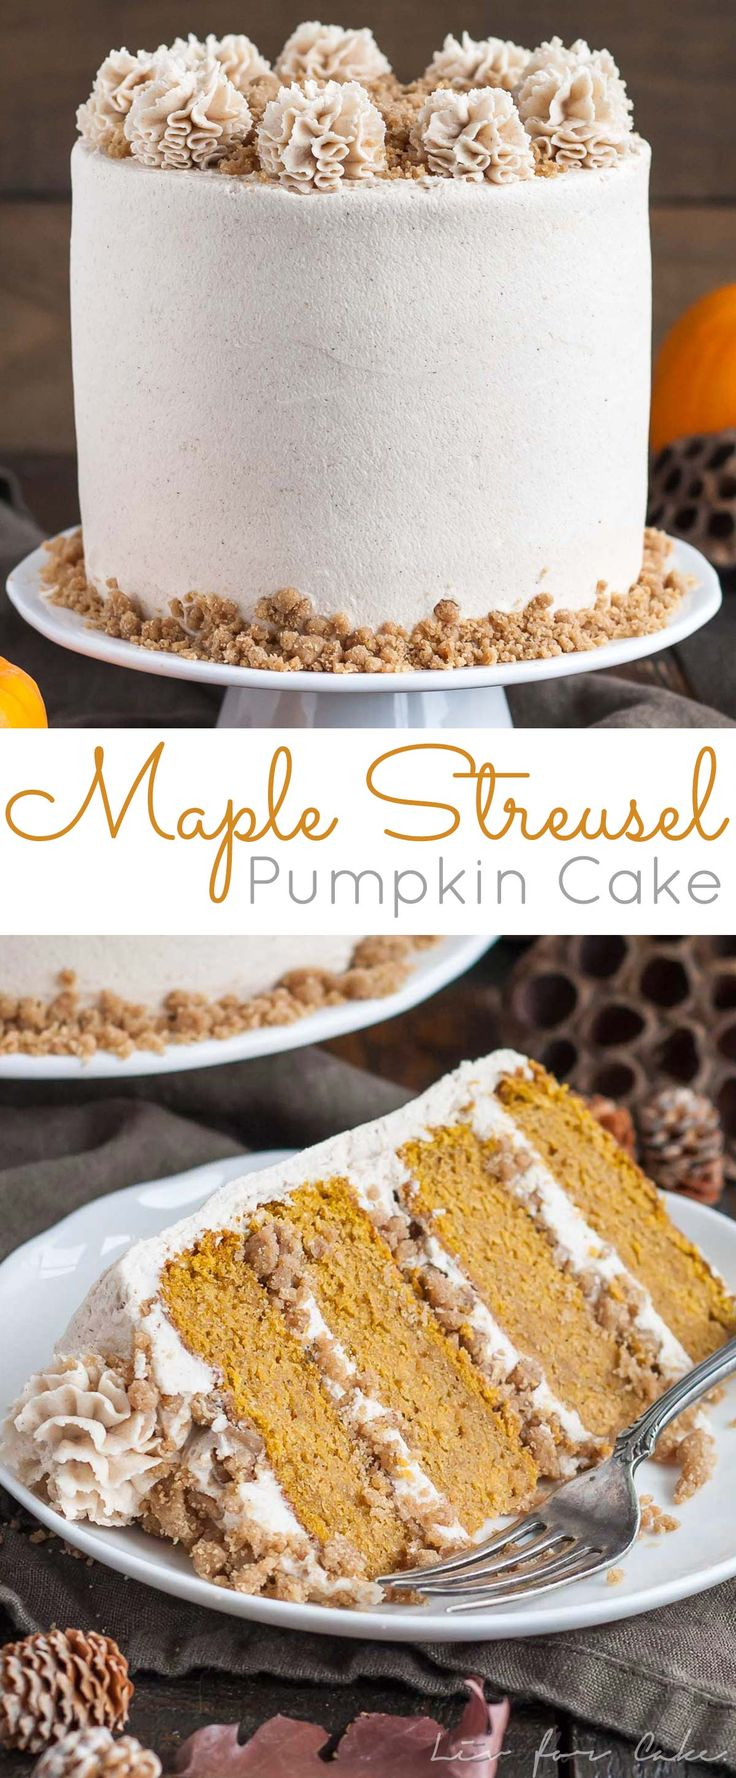 This Maple Streusel Pumpkin Cake is perfect for the holidays! Layers of pumpkin cake, cinnamon streusel, and maple cinnamon frosting. | livforcake.com: